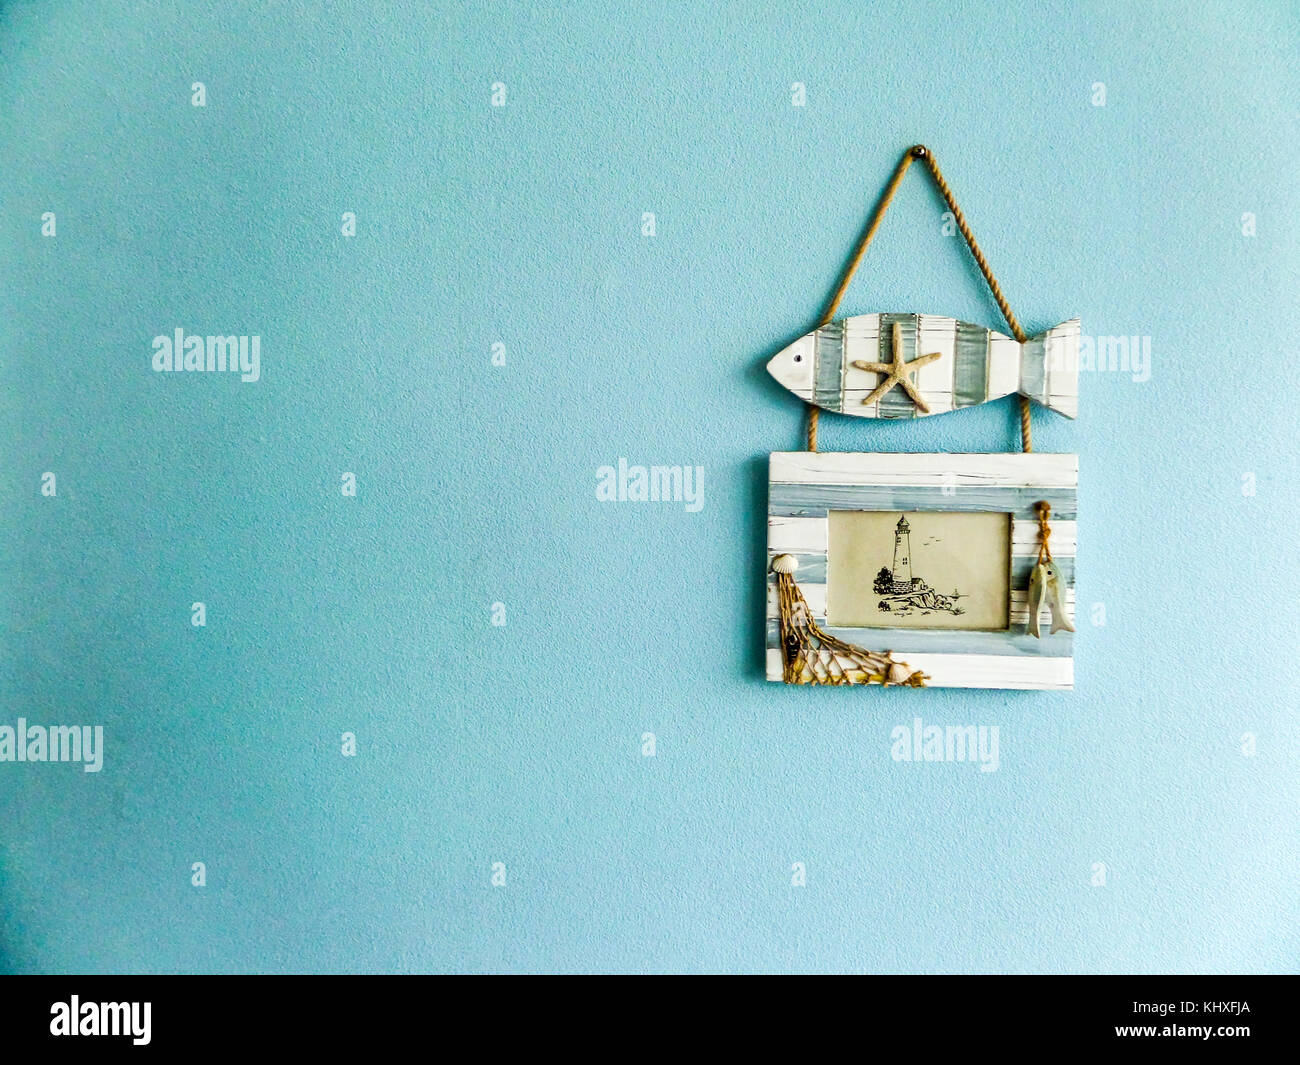 Fish and picture frame hang on aqua light color wall stock photo fish and picture frame hang on aqua light color wall jeuxipadfo Images